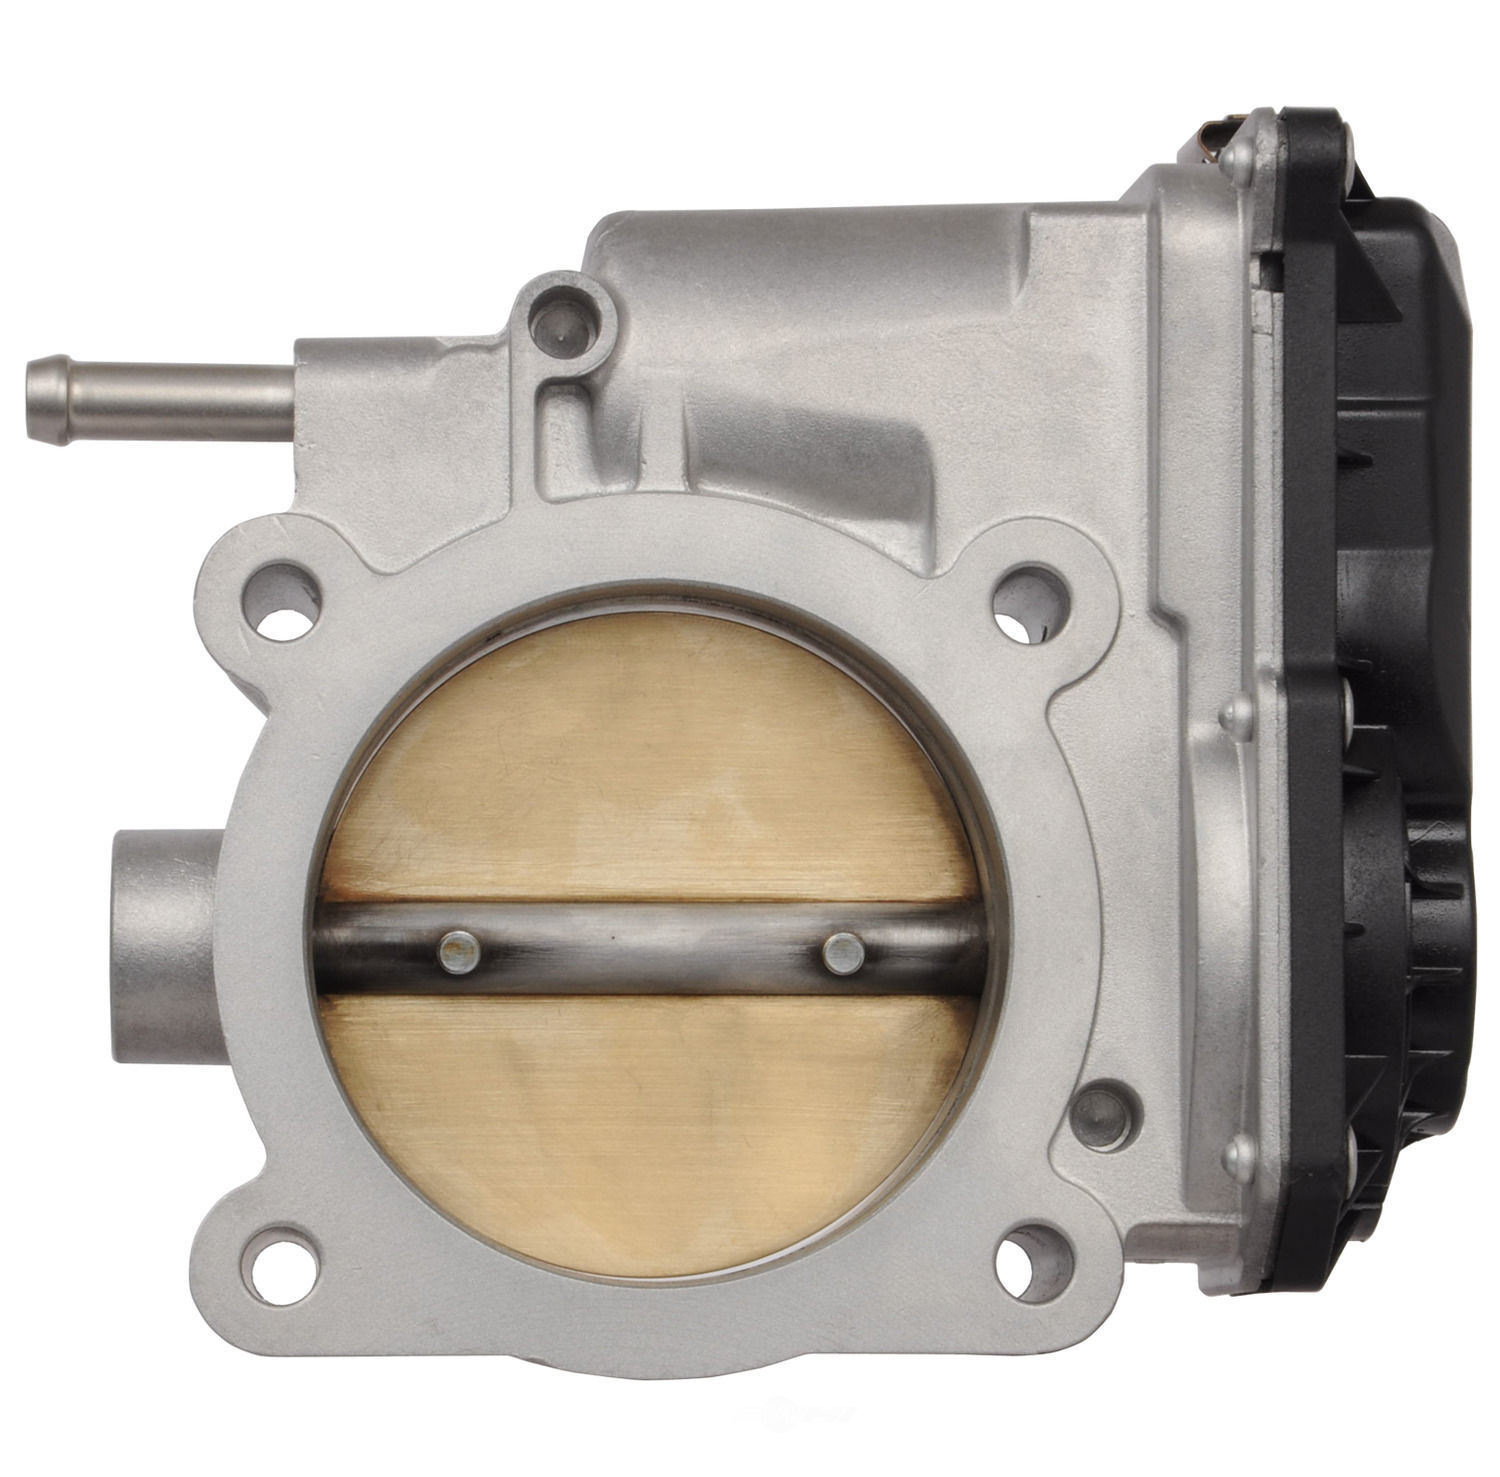 Reman Throttle Body Fits 2005-2013 Nissan Frontier